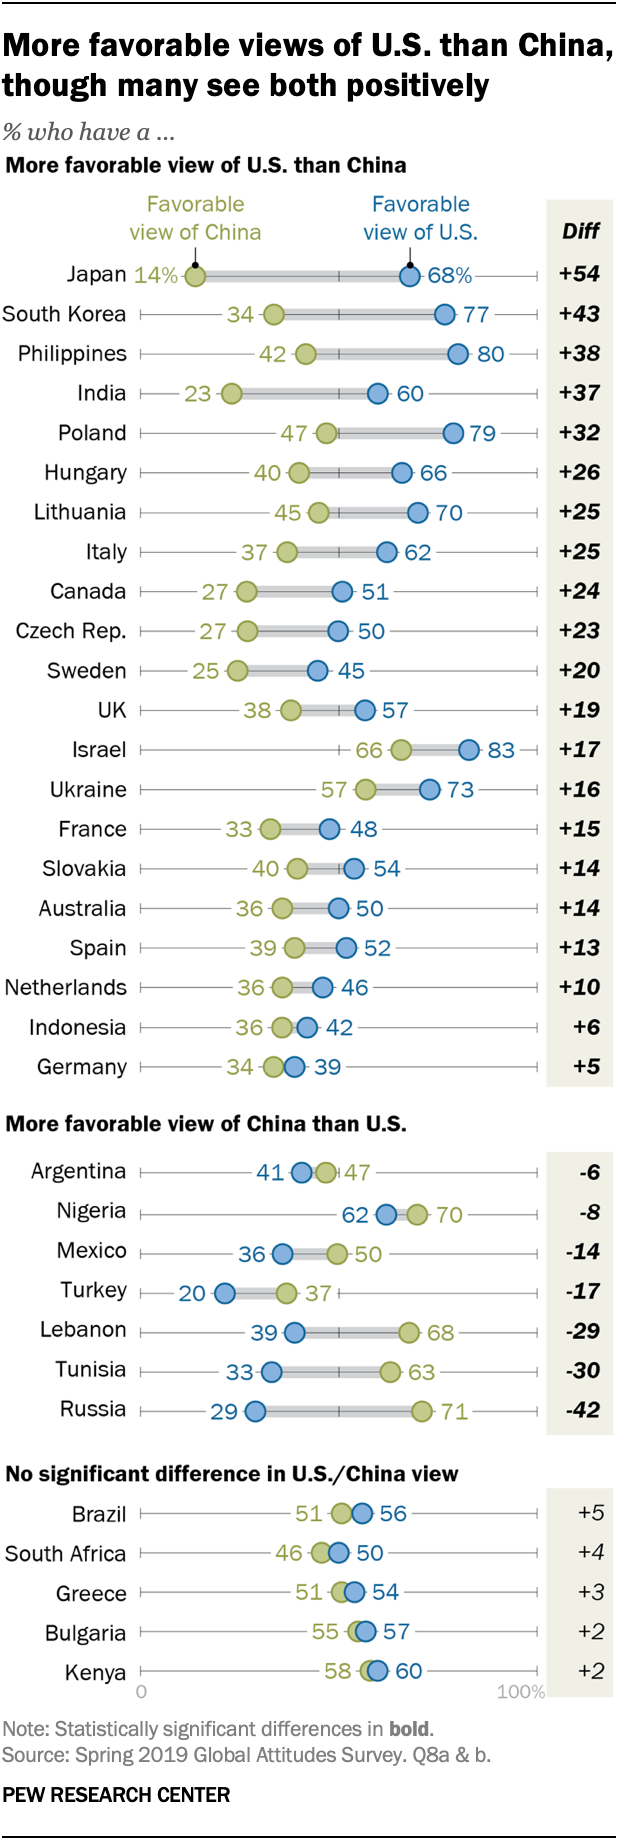 More favorable views of U.S. than China, though many see both positively